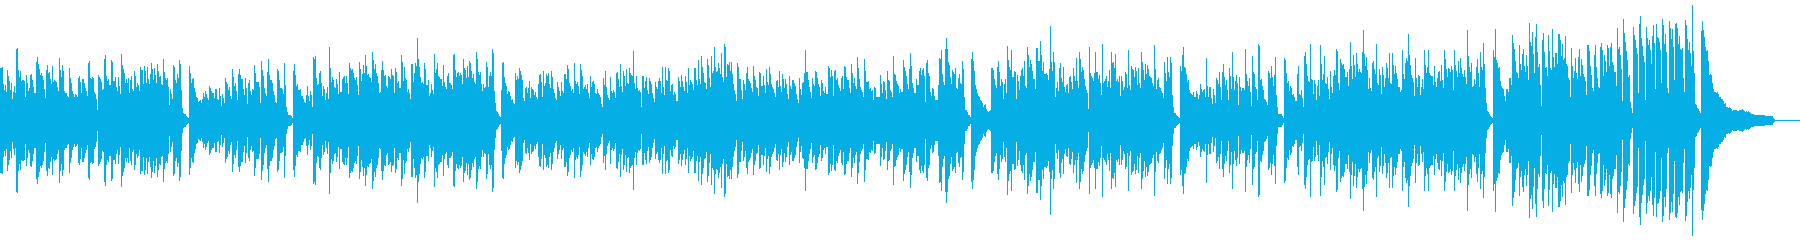 Warm bossa nova for about 120 seconds's reproduced waveform